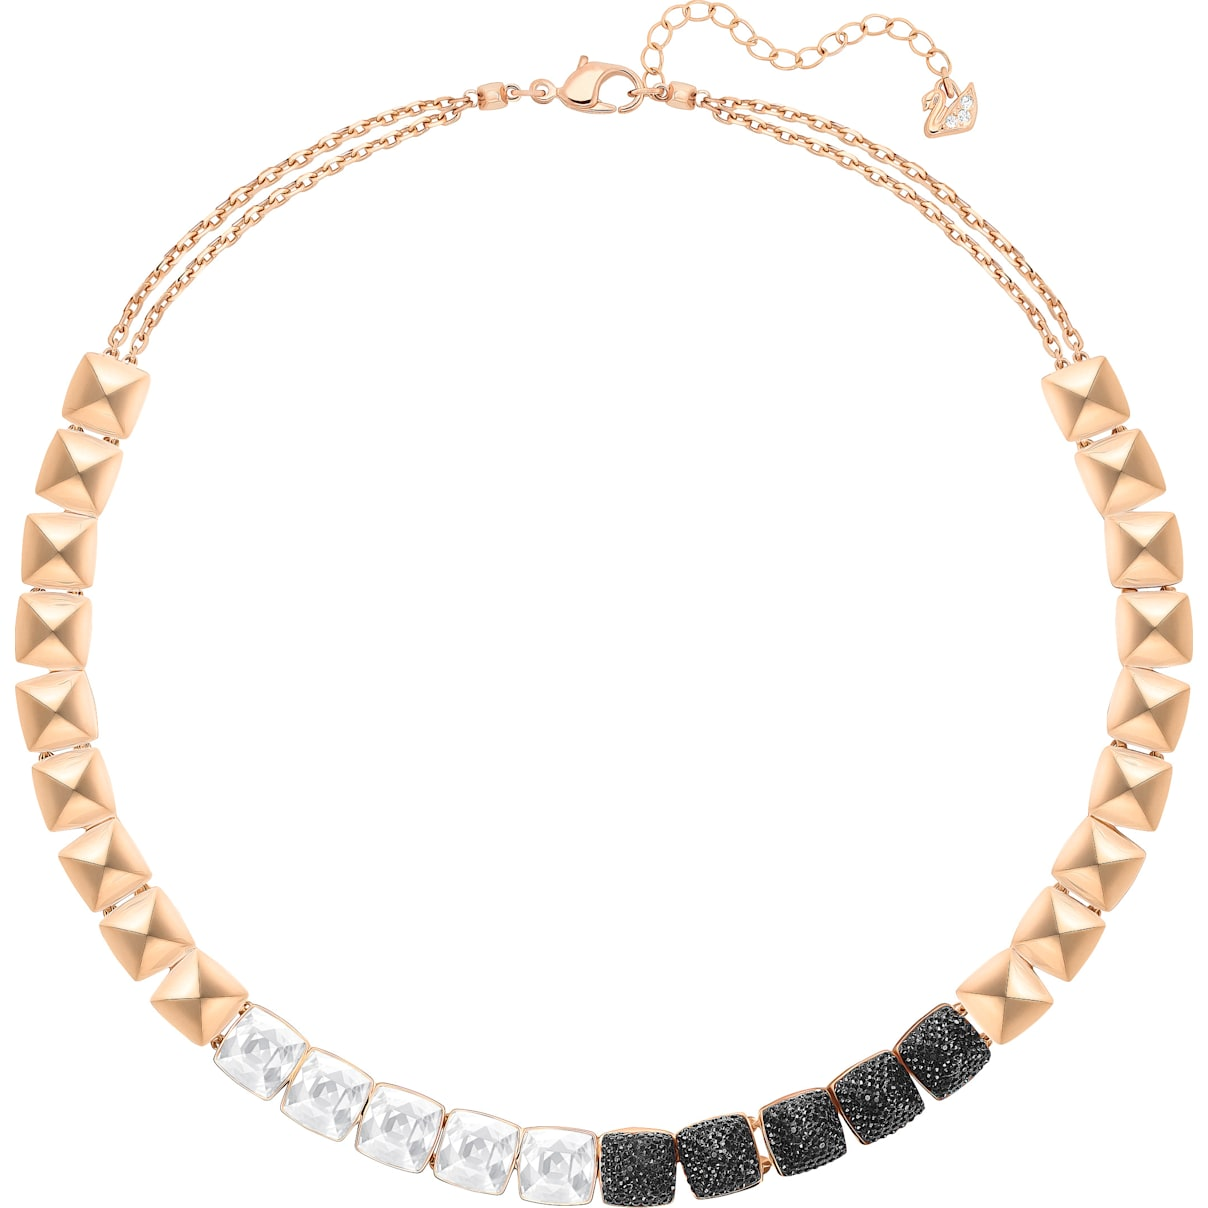 Swarovski Glance Necklace, Multi-colored, Rose-gold tone plated